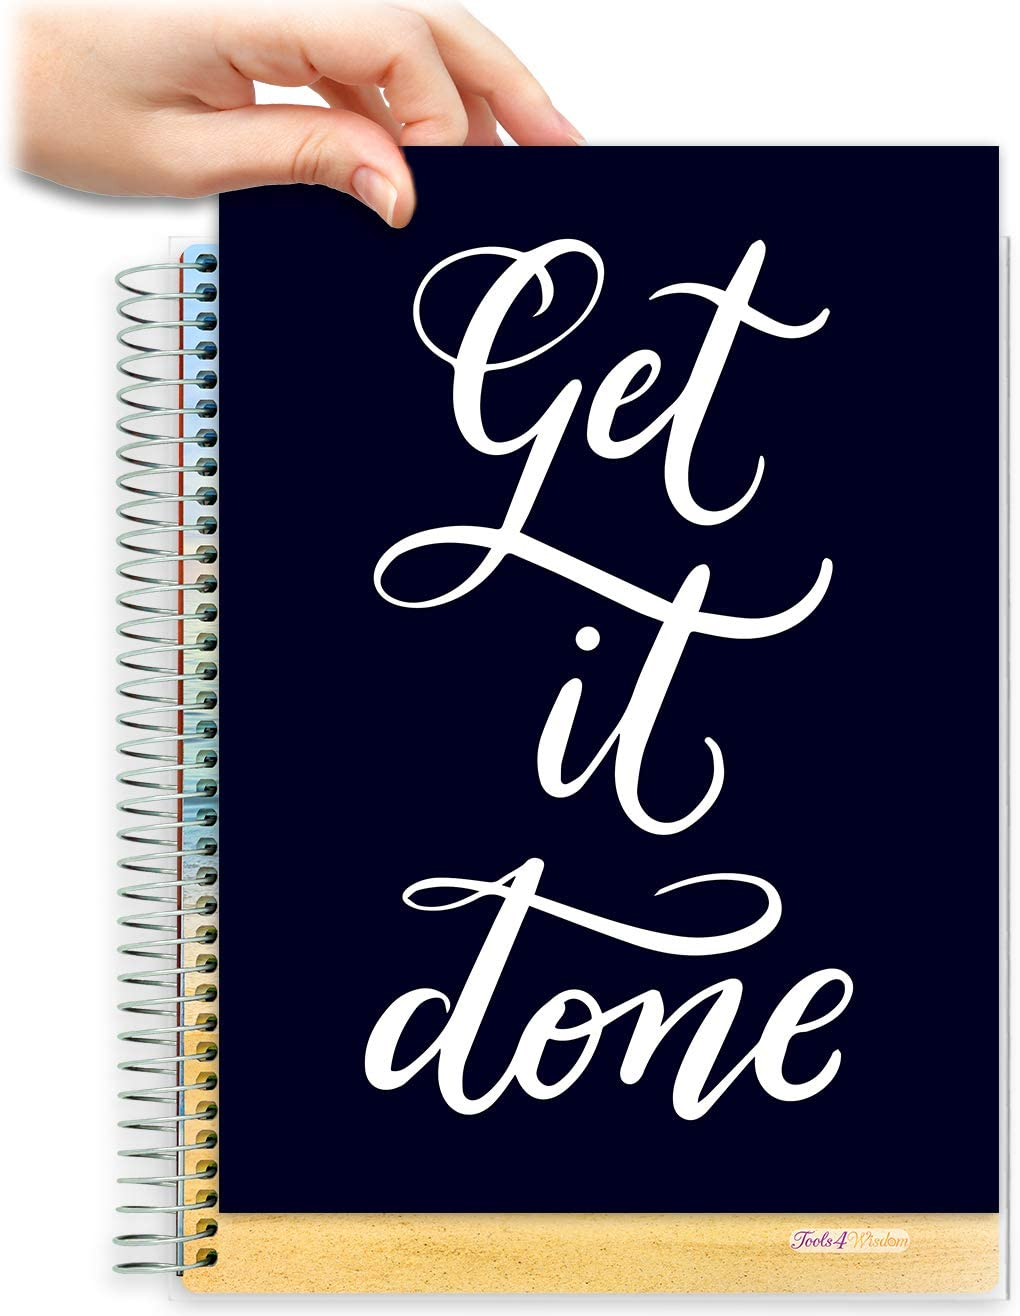 8.5x11 Customizable Softcover Planner • April 2021 to June 2022 Academic Year • Get It Done